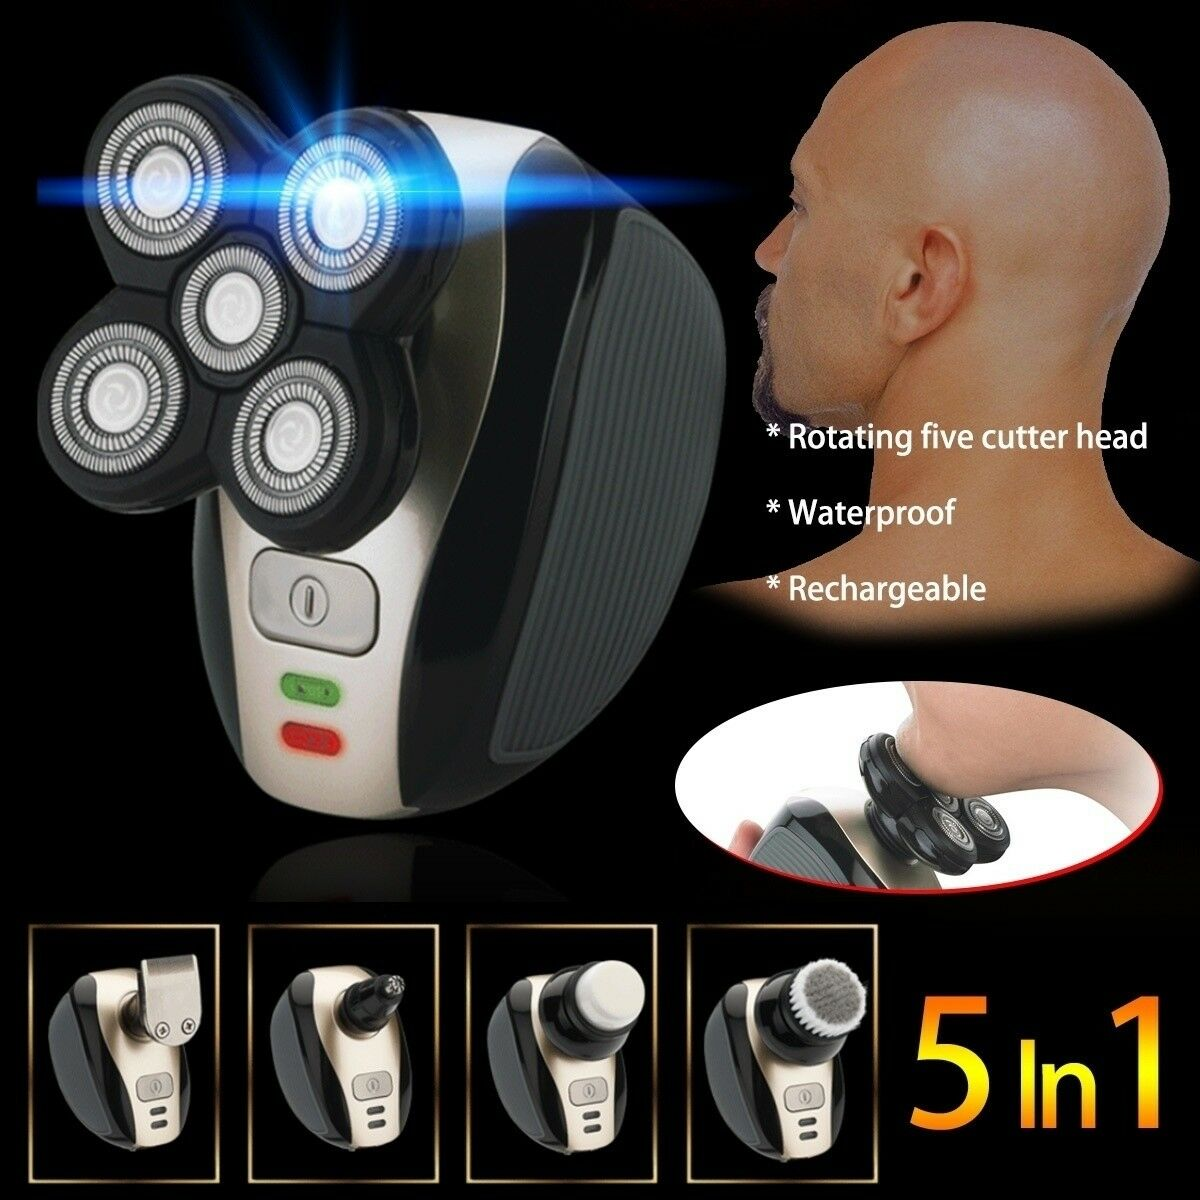 5 IN 1 4D Rotary Razor Floating Head Electric Shaver Bald Be